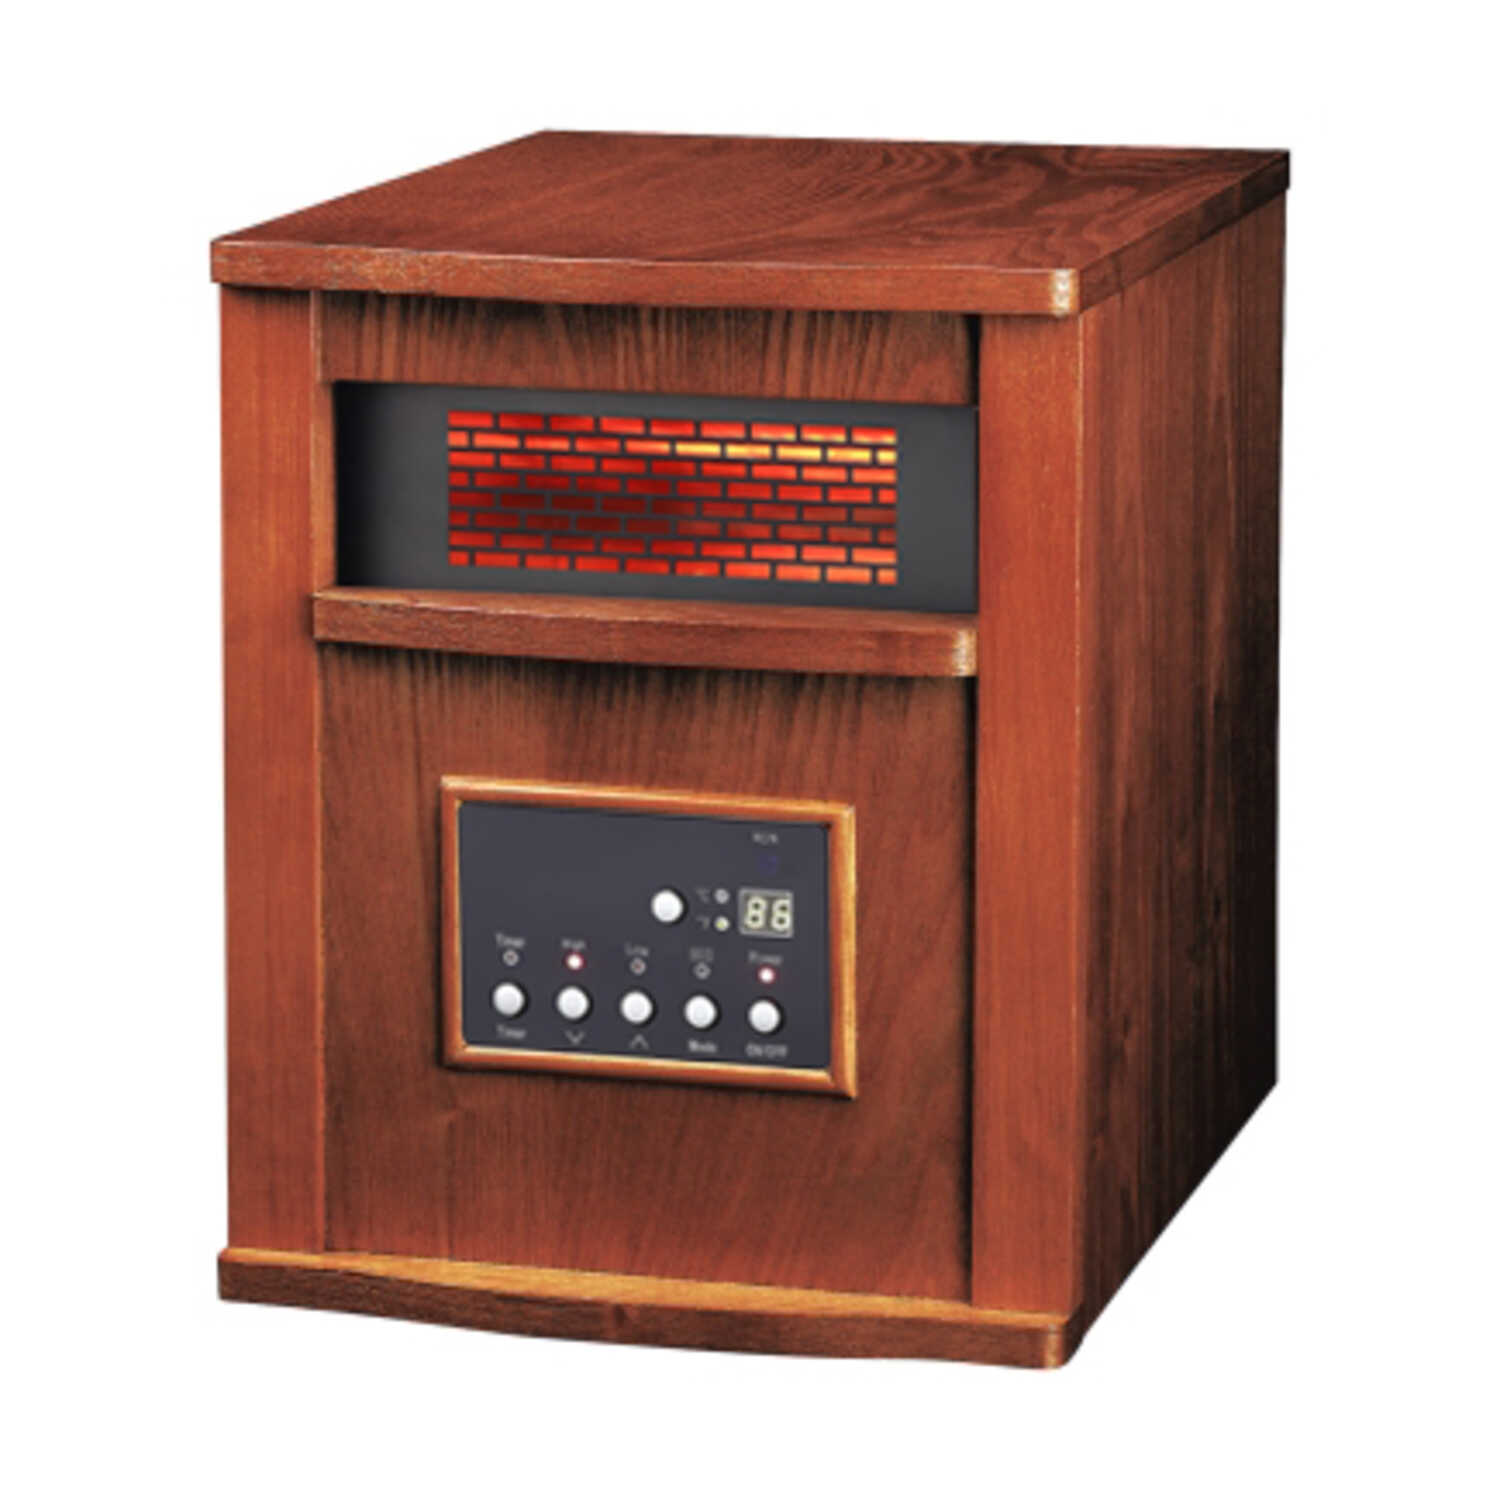 Konwin 250 Sq Ft Electric Infrared Heater Ace Hardware